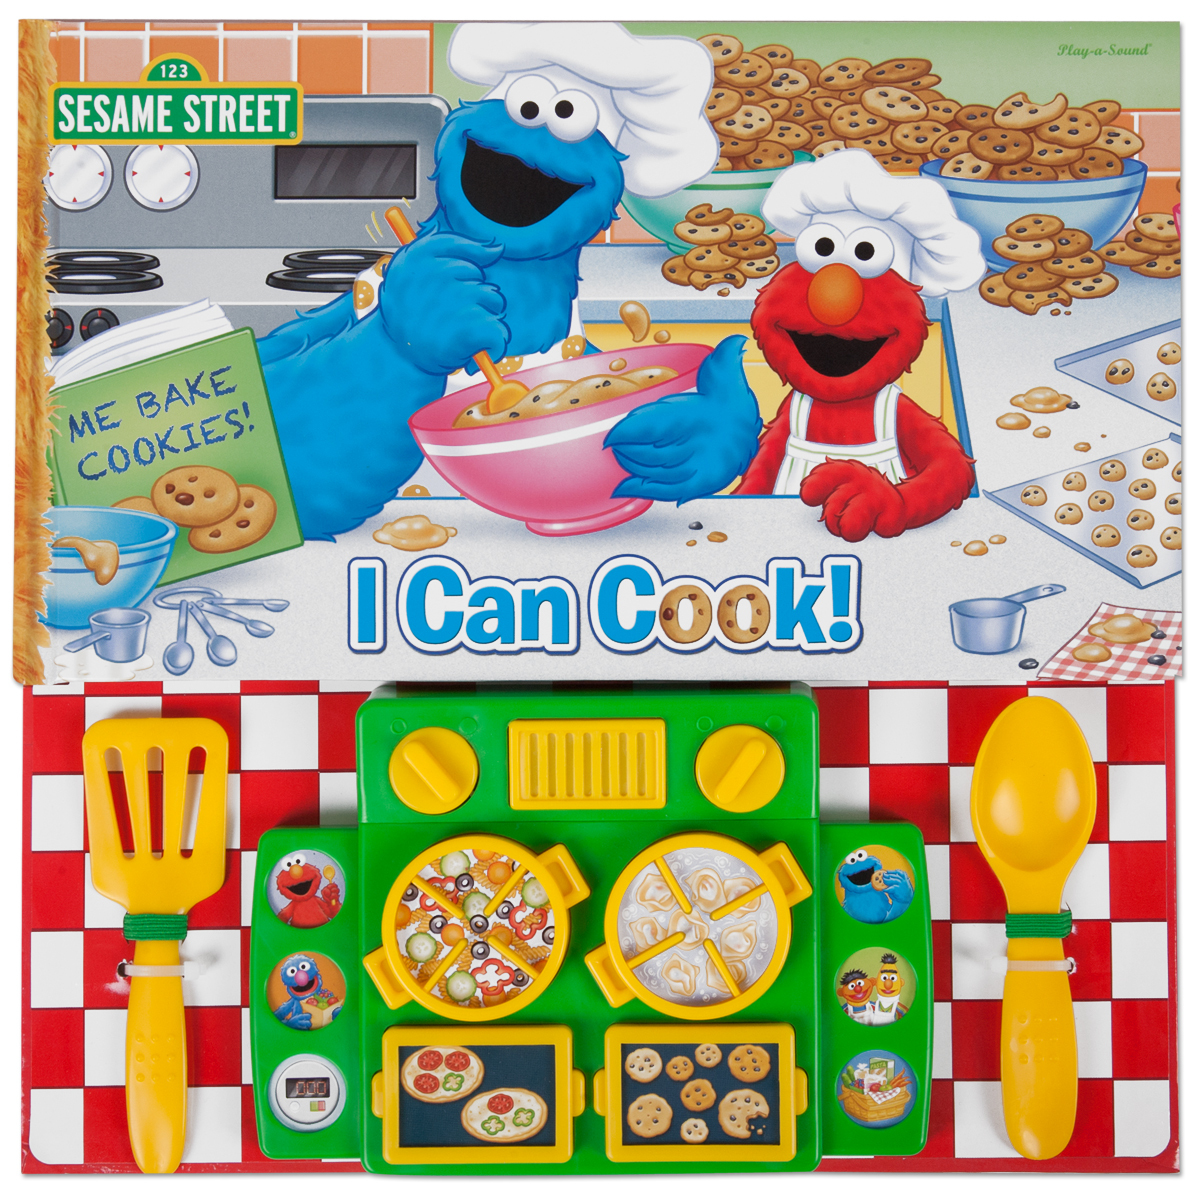 Sesame Street Cooktop Sound Book